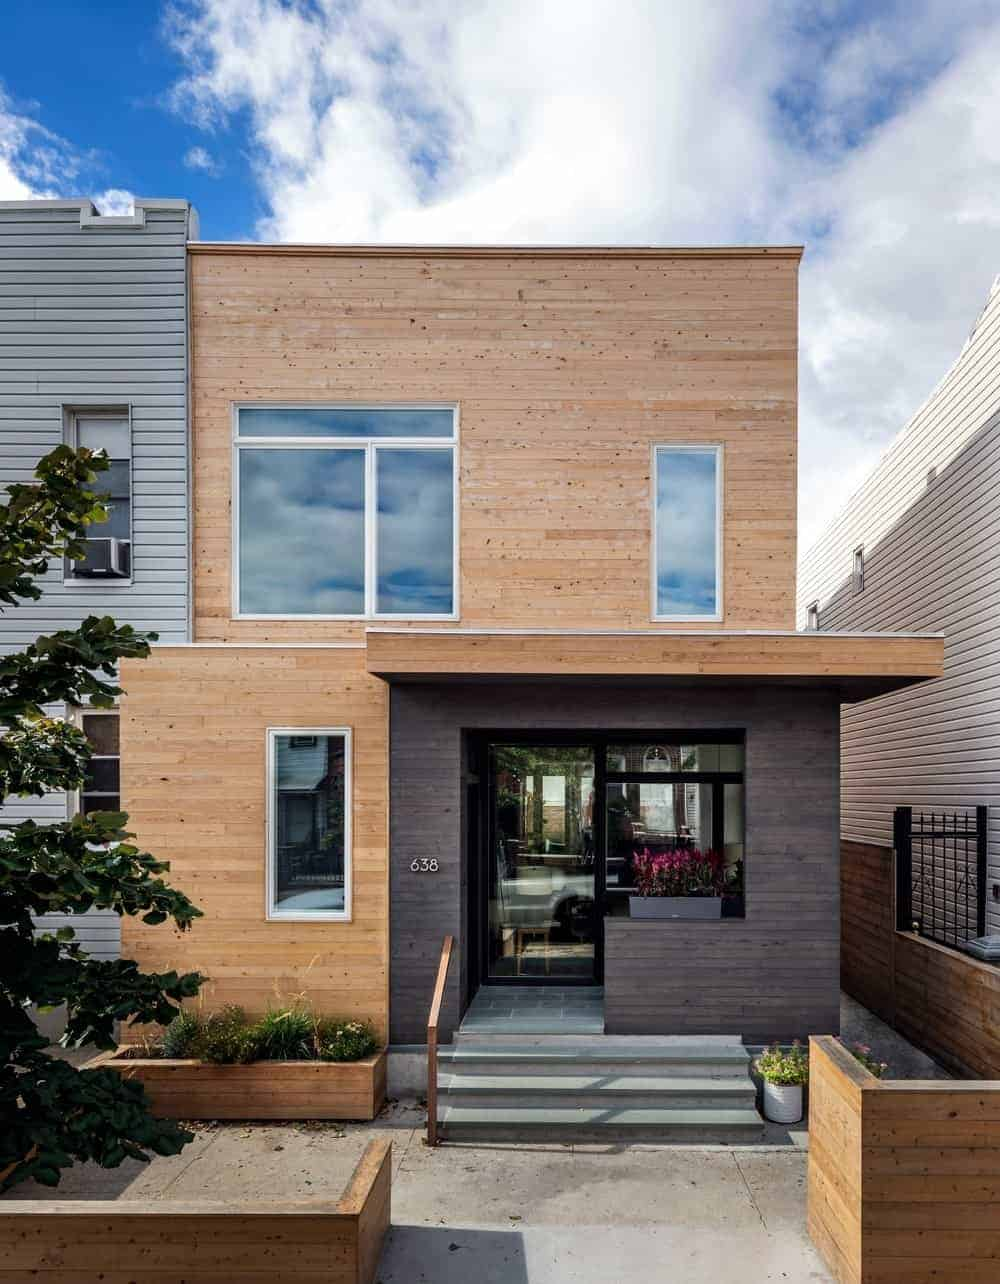 20th Street House Design by Barker Freeman Architects